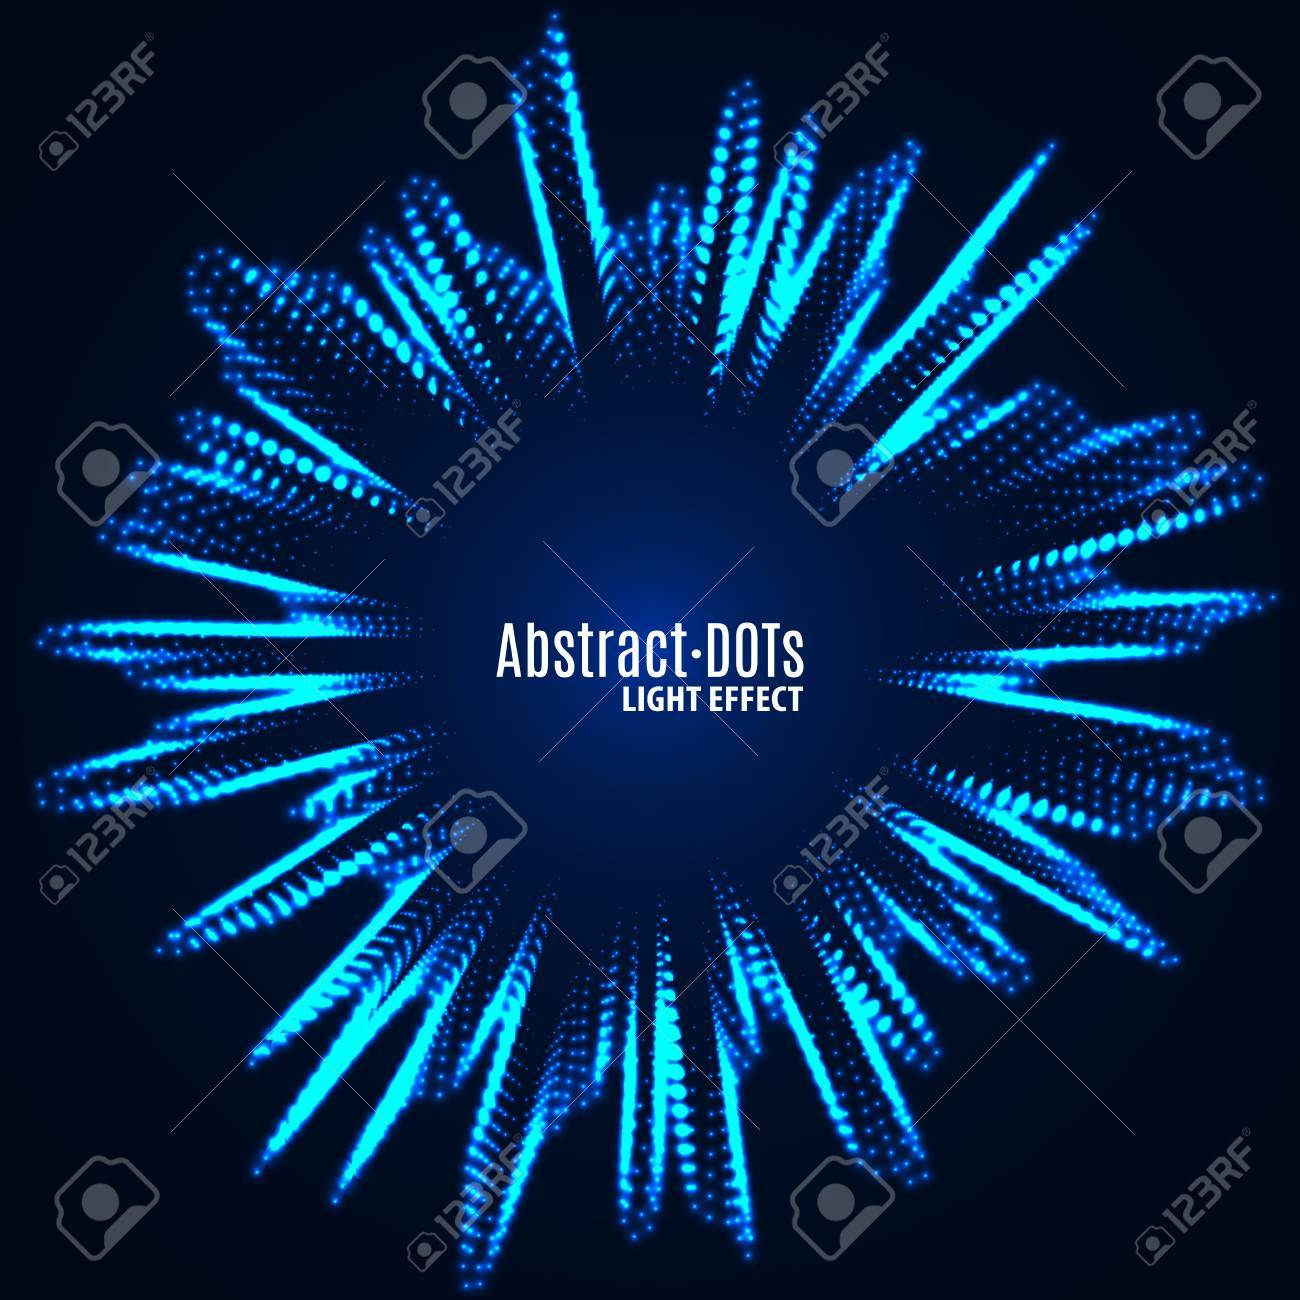 Minimalistic abstract lighten dots background vector illustration for album music or other cover. Design element of dots with same random and noise. - 69364061